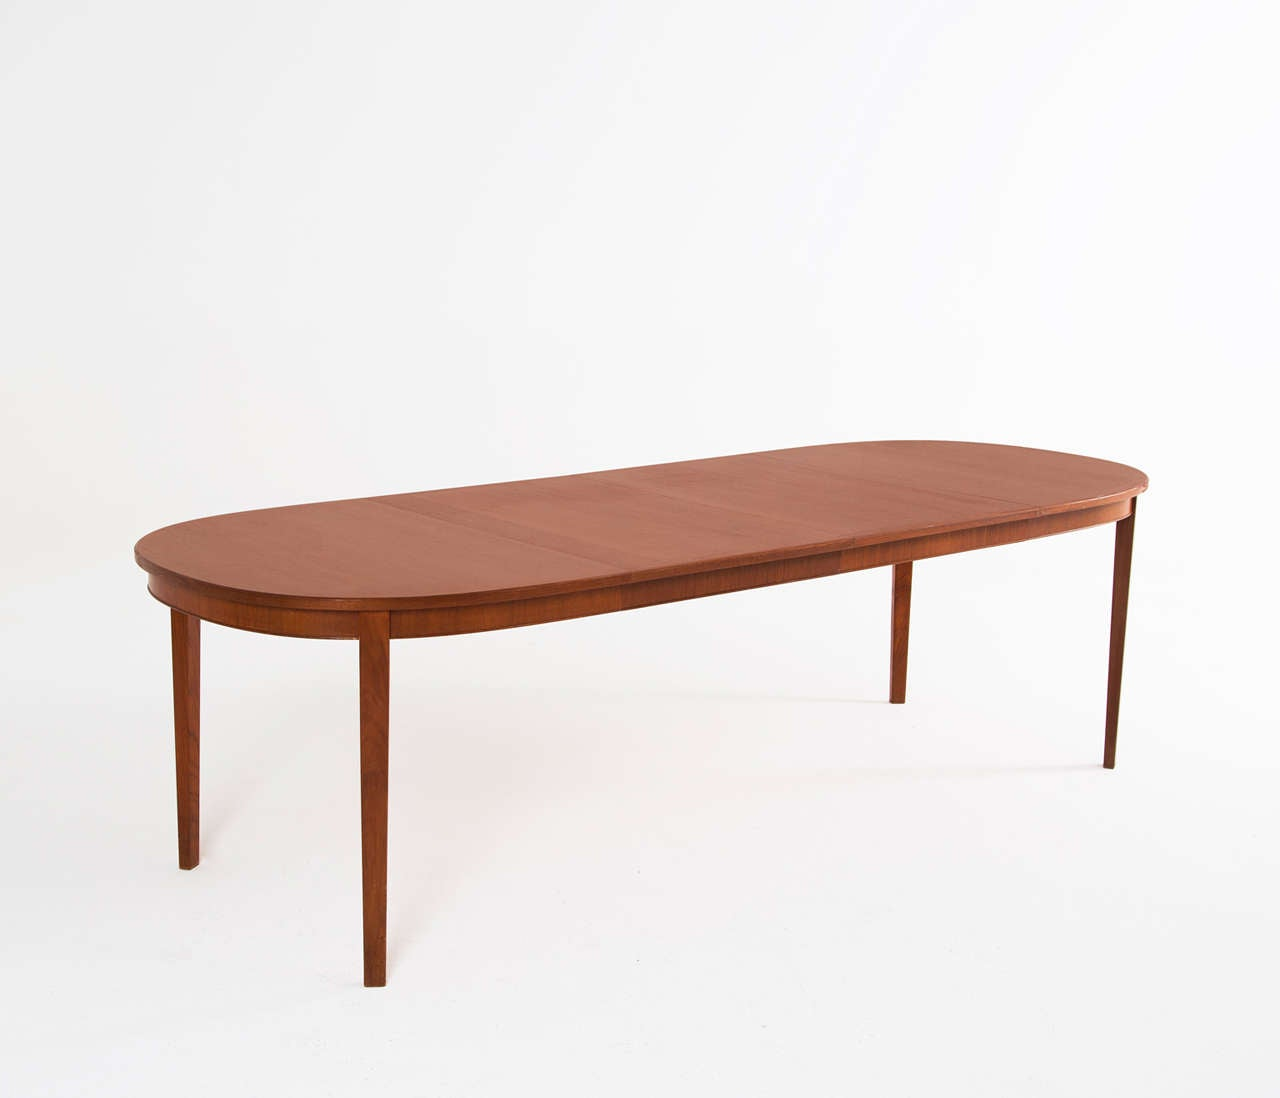 Extendable Oval Dining Table In Teak At 1stdibs